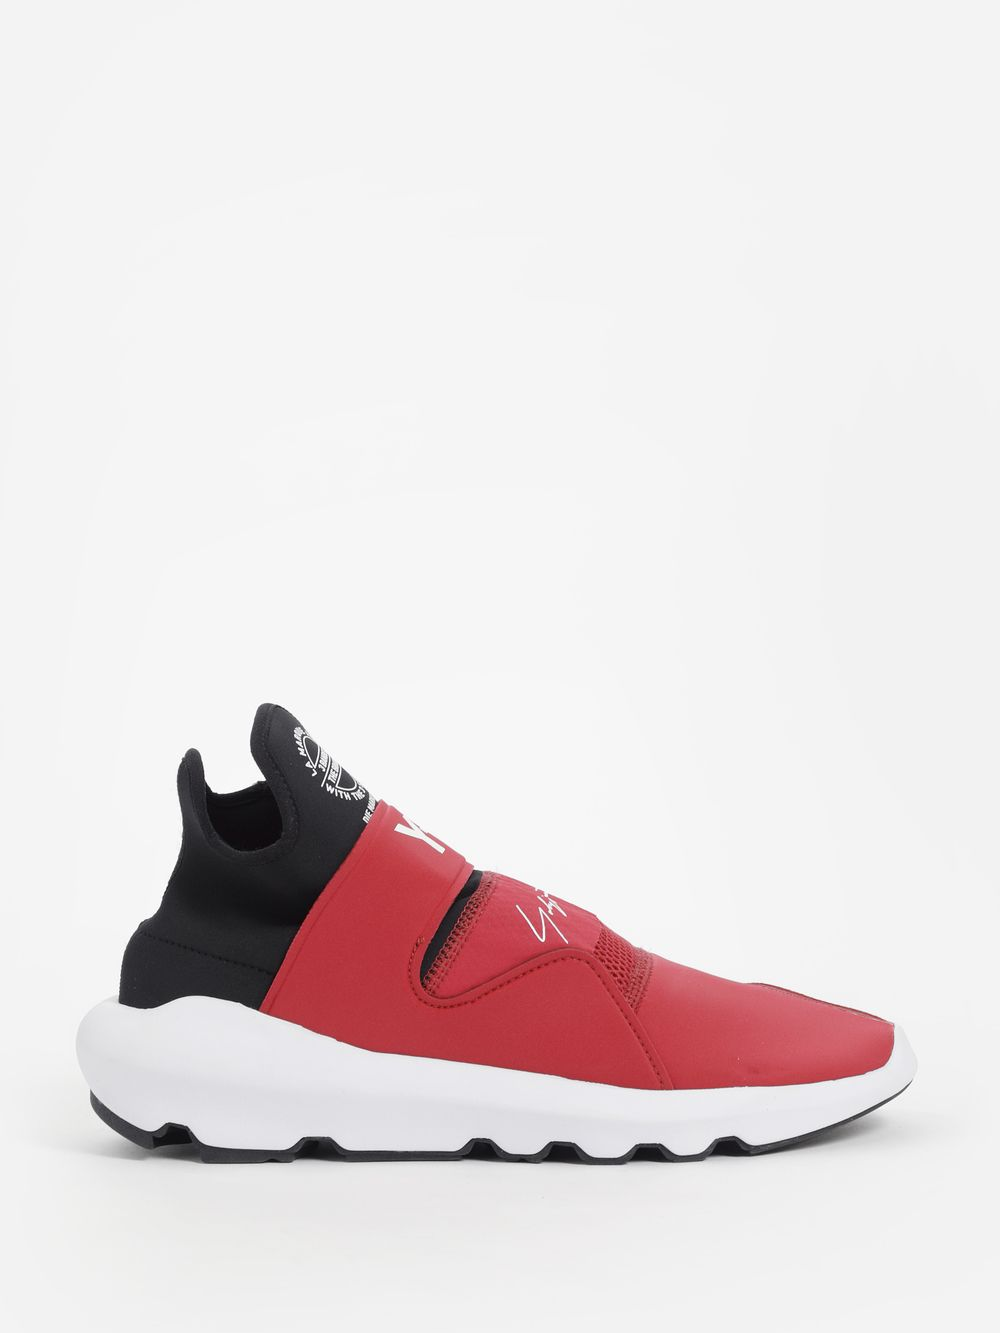 official photos 0ac21 d43cb LCS스러운 솔 Men s Accessories, High Top Sneakers, Nike Shoes, Shoes Men,